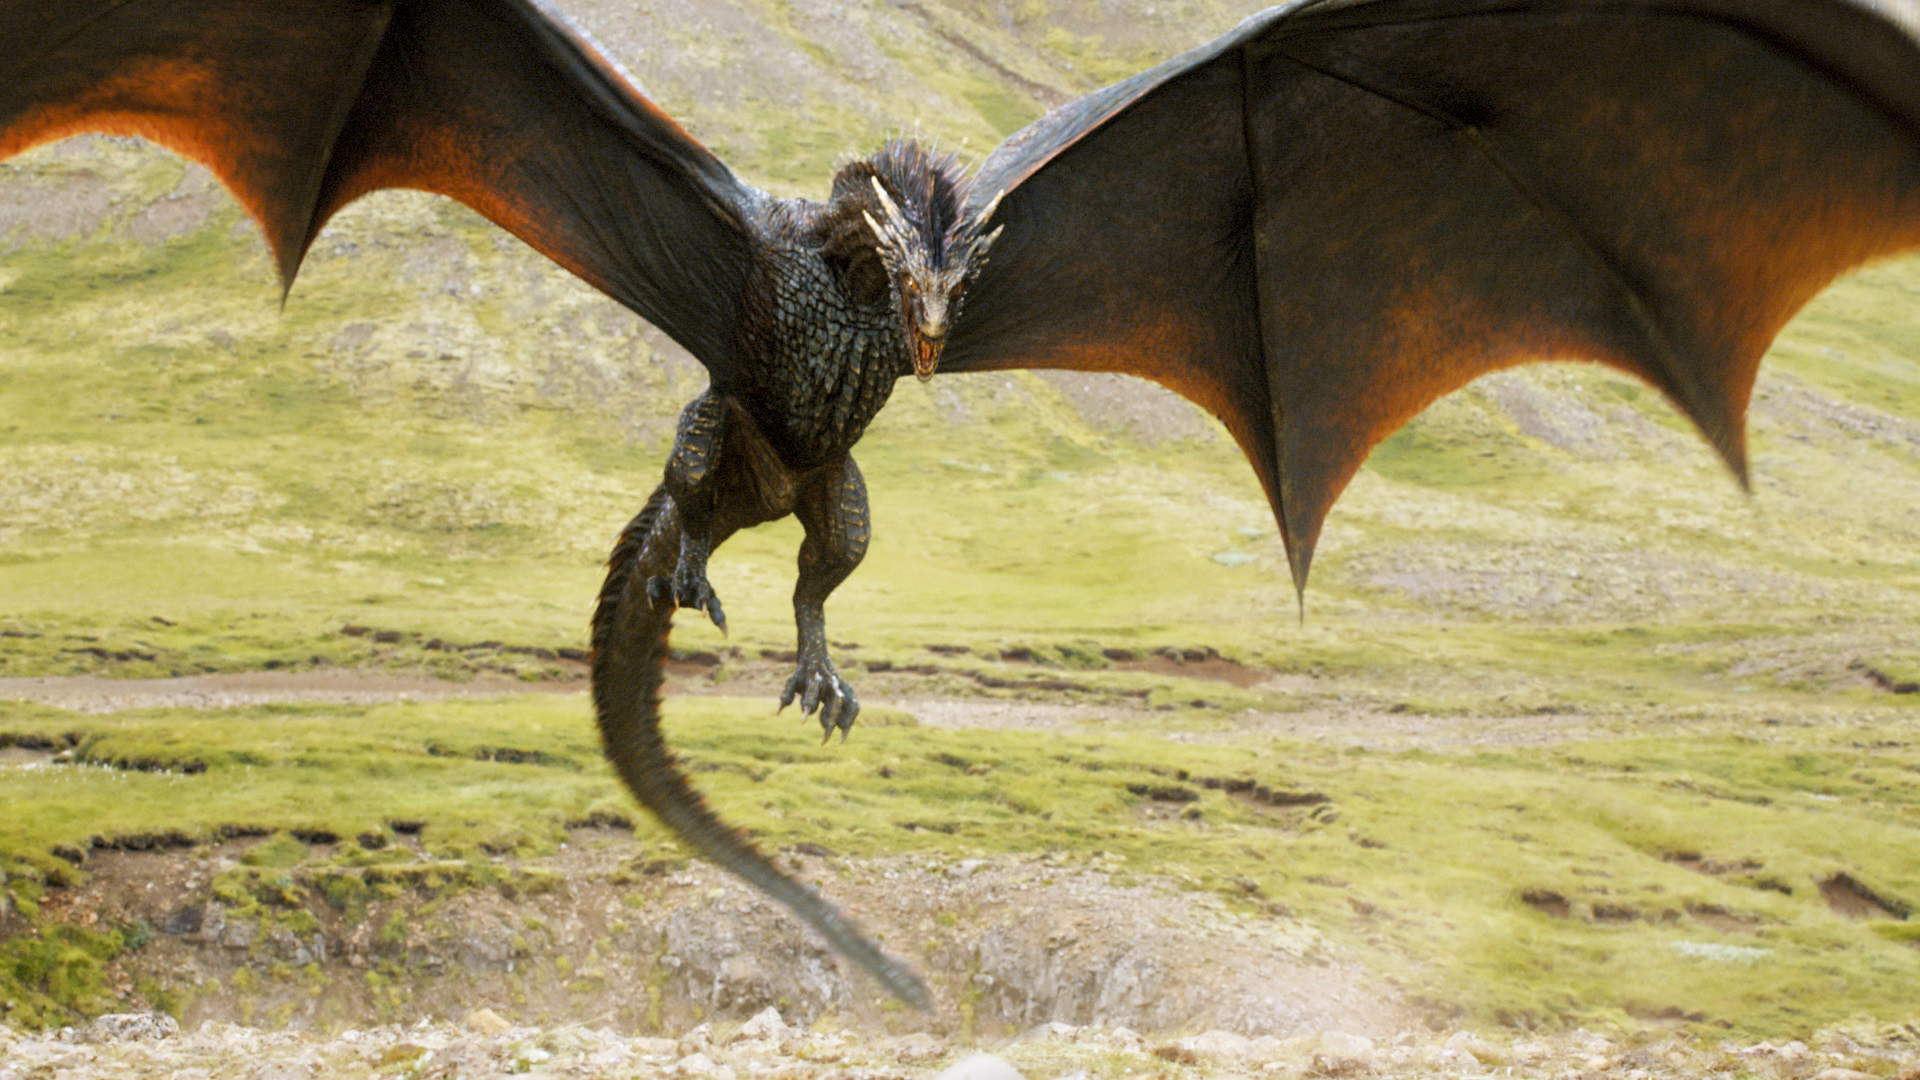 A dragon from HBO's Game of Thrones